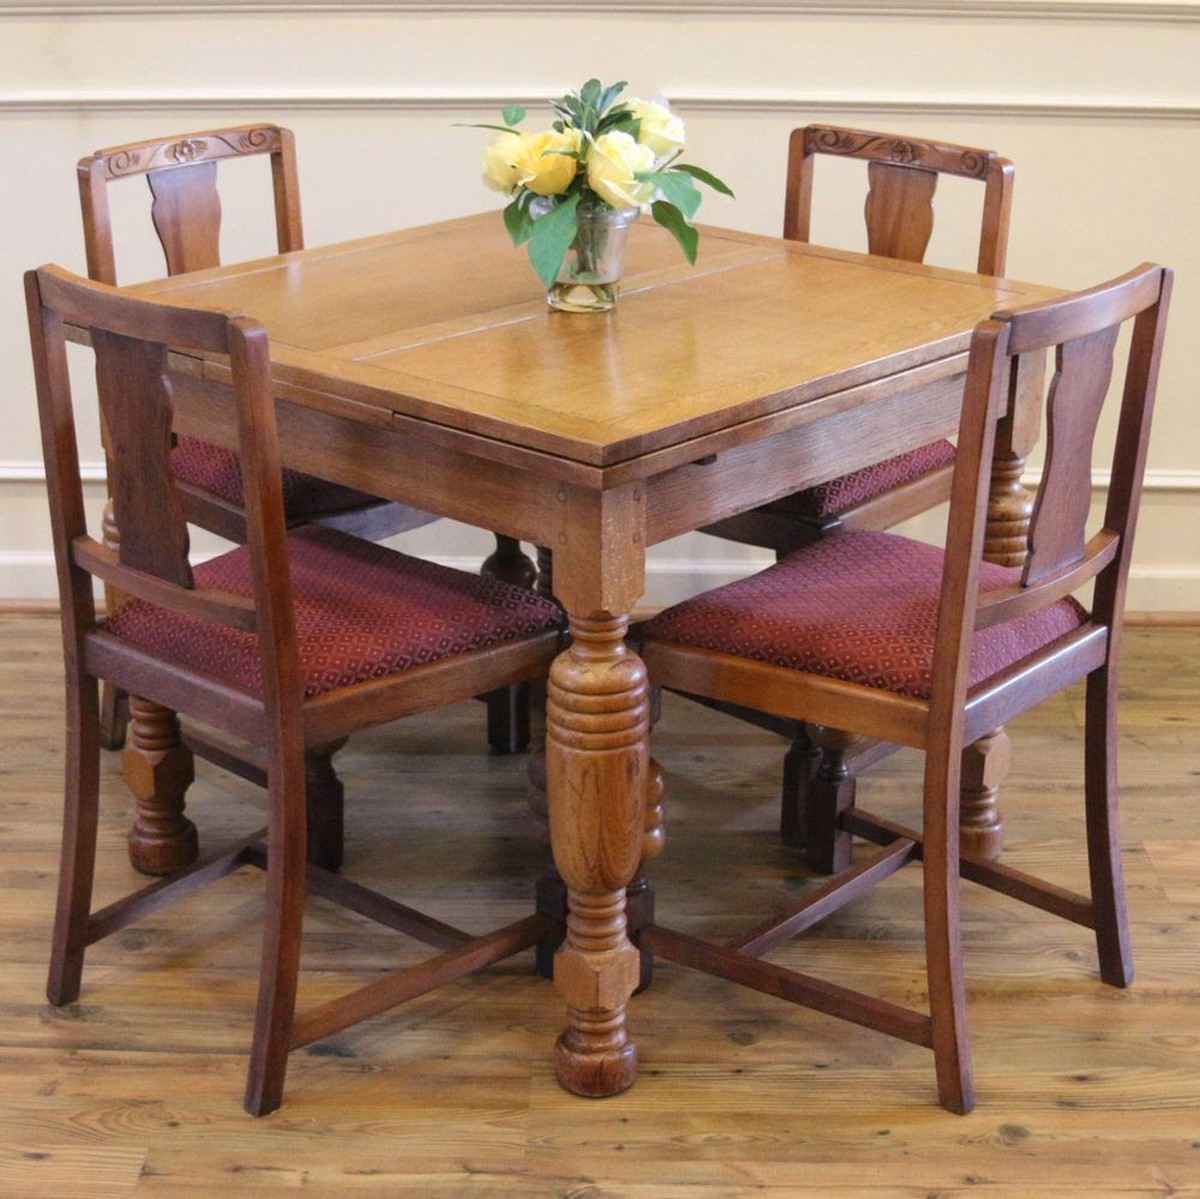 Oak Wood Table And Chairs: Secondhand Chairs And Tables